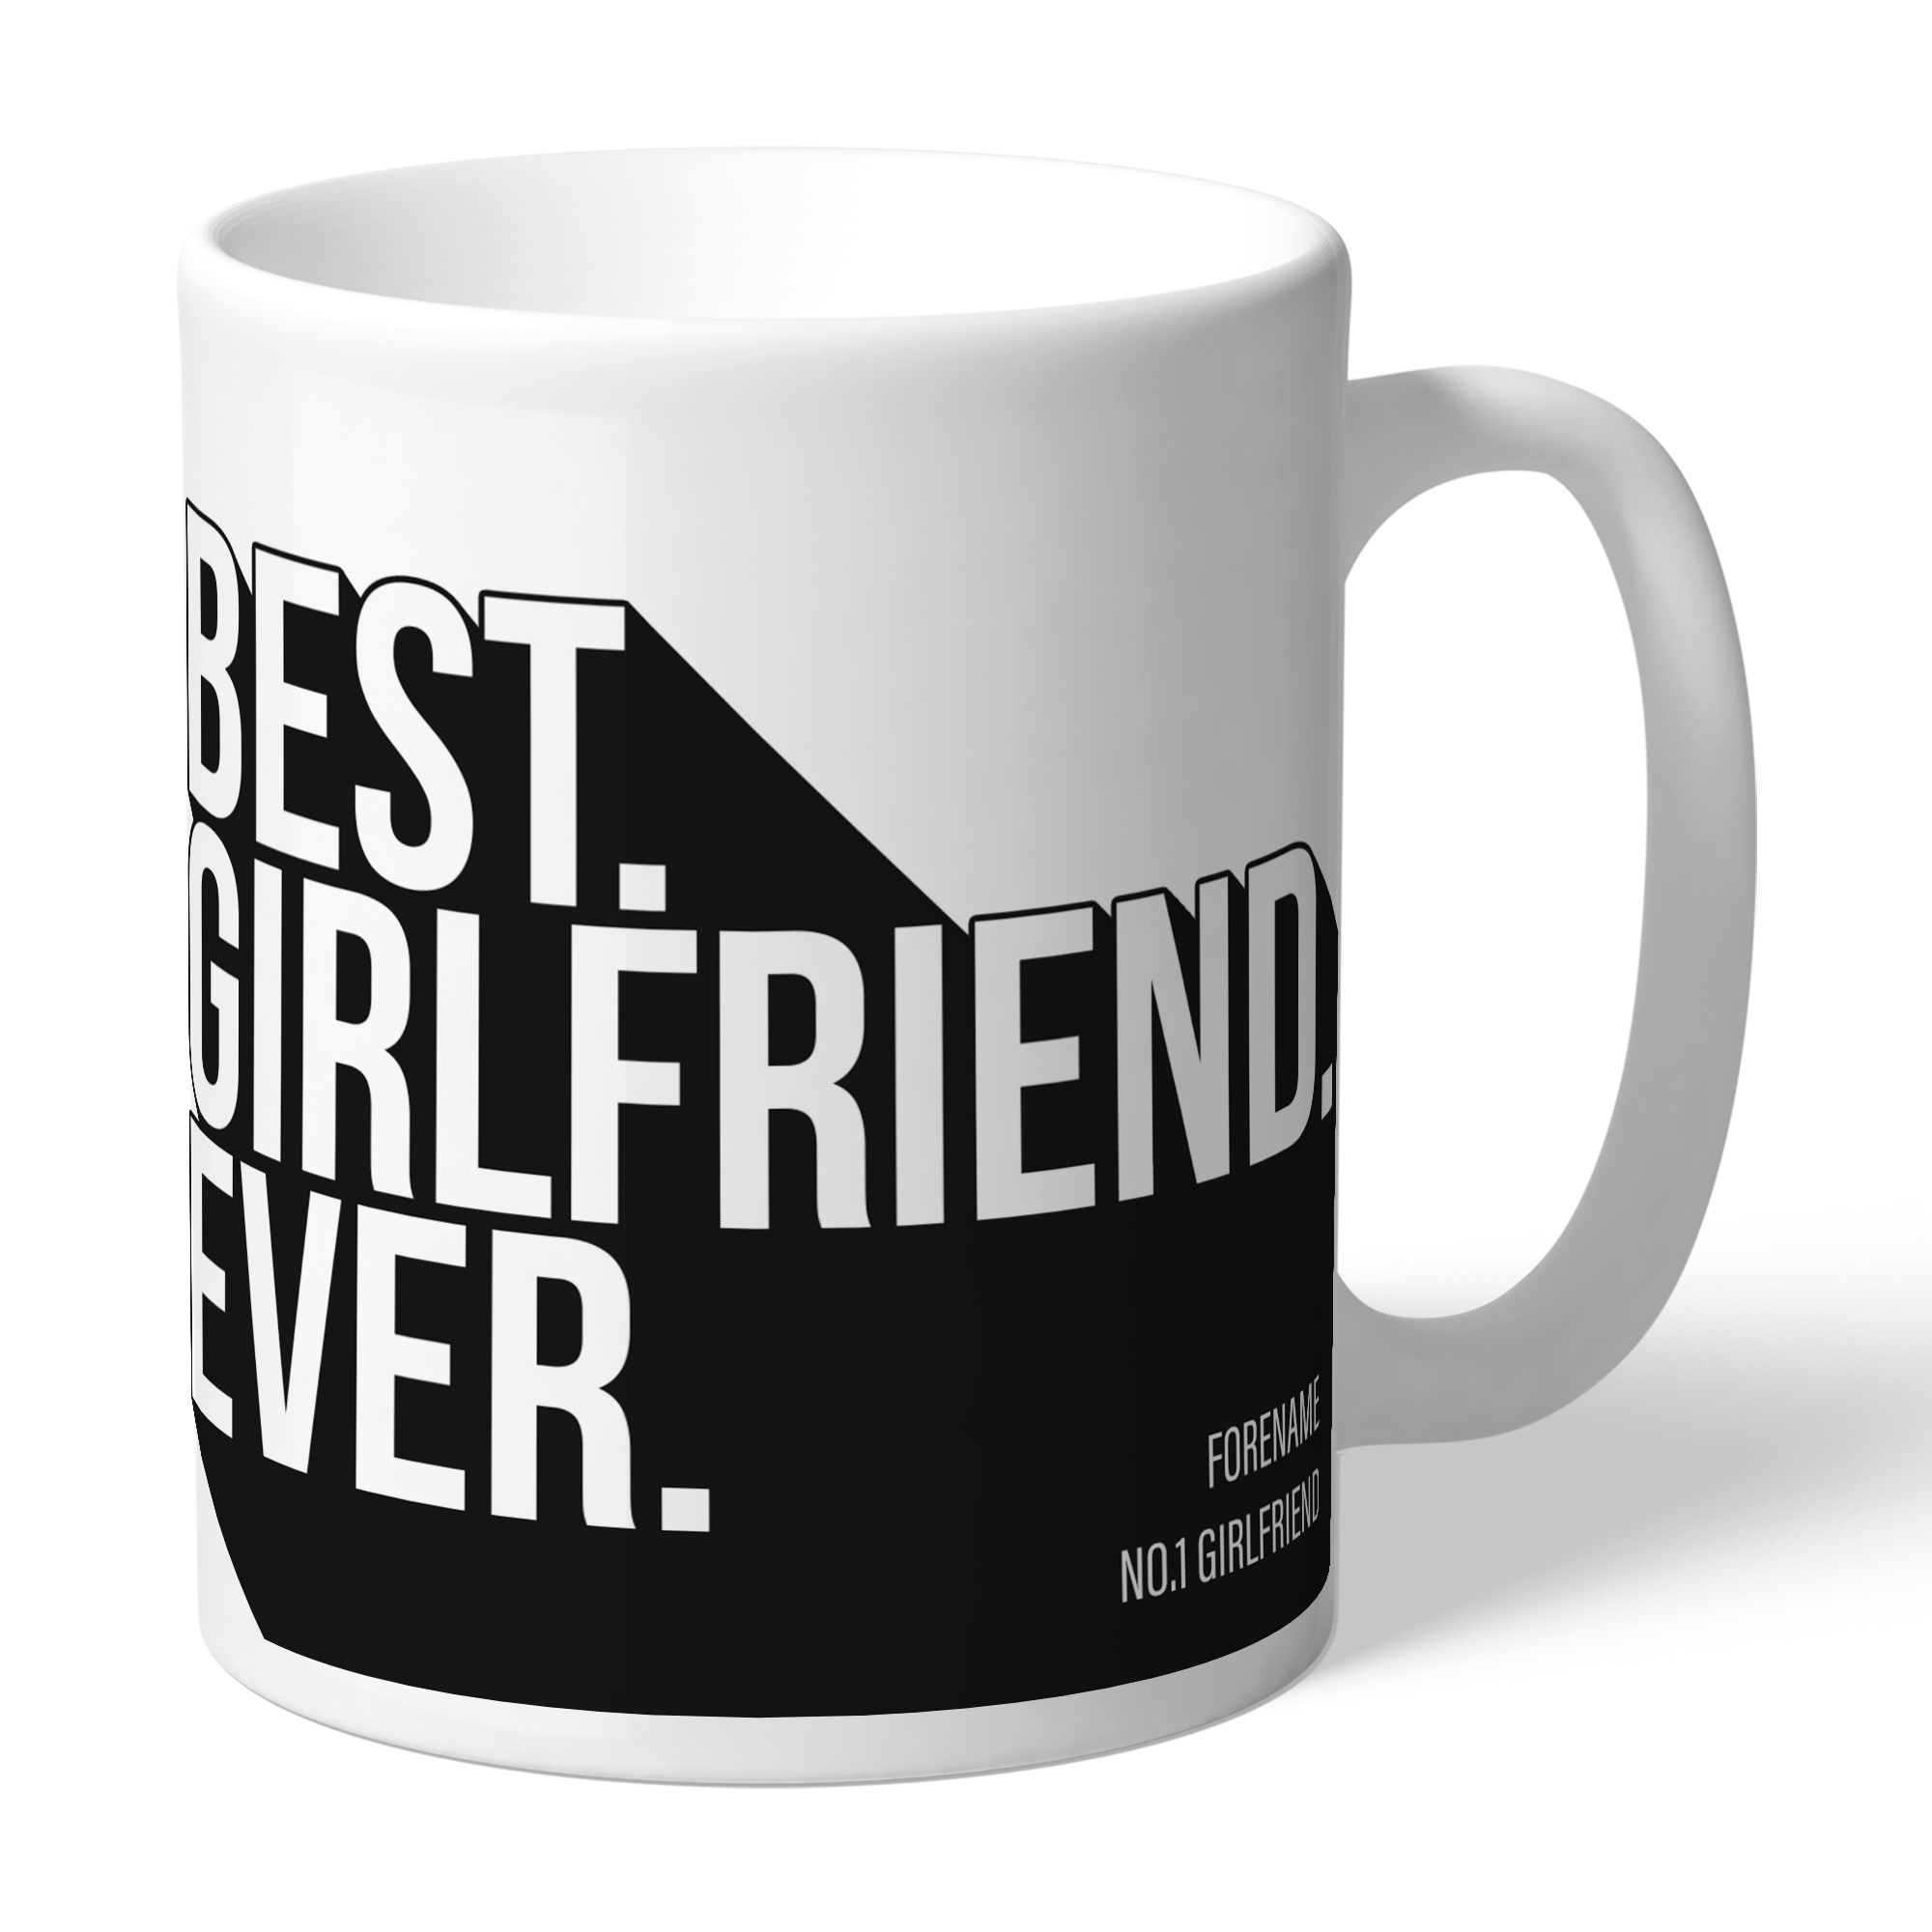 Newcastle United FC Best Girlfriend Ever Mug